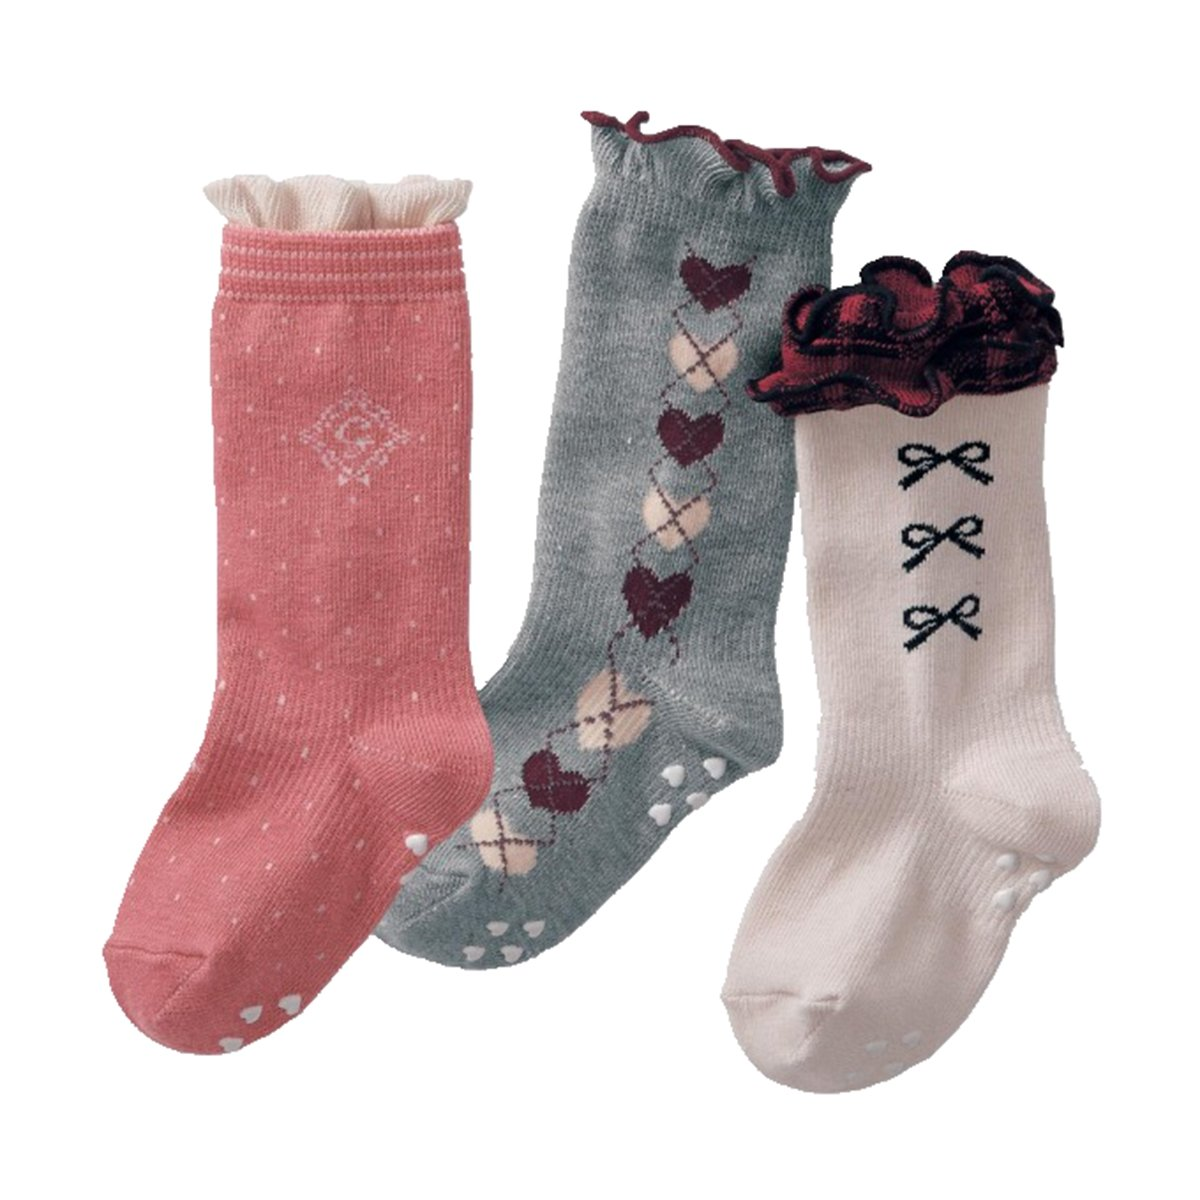 Baby Girls Non Skid Cotton Colorful Lace Toddler Socks Knee High Socks 3-Pairs